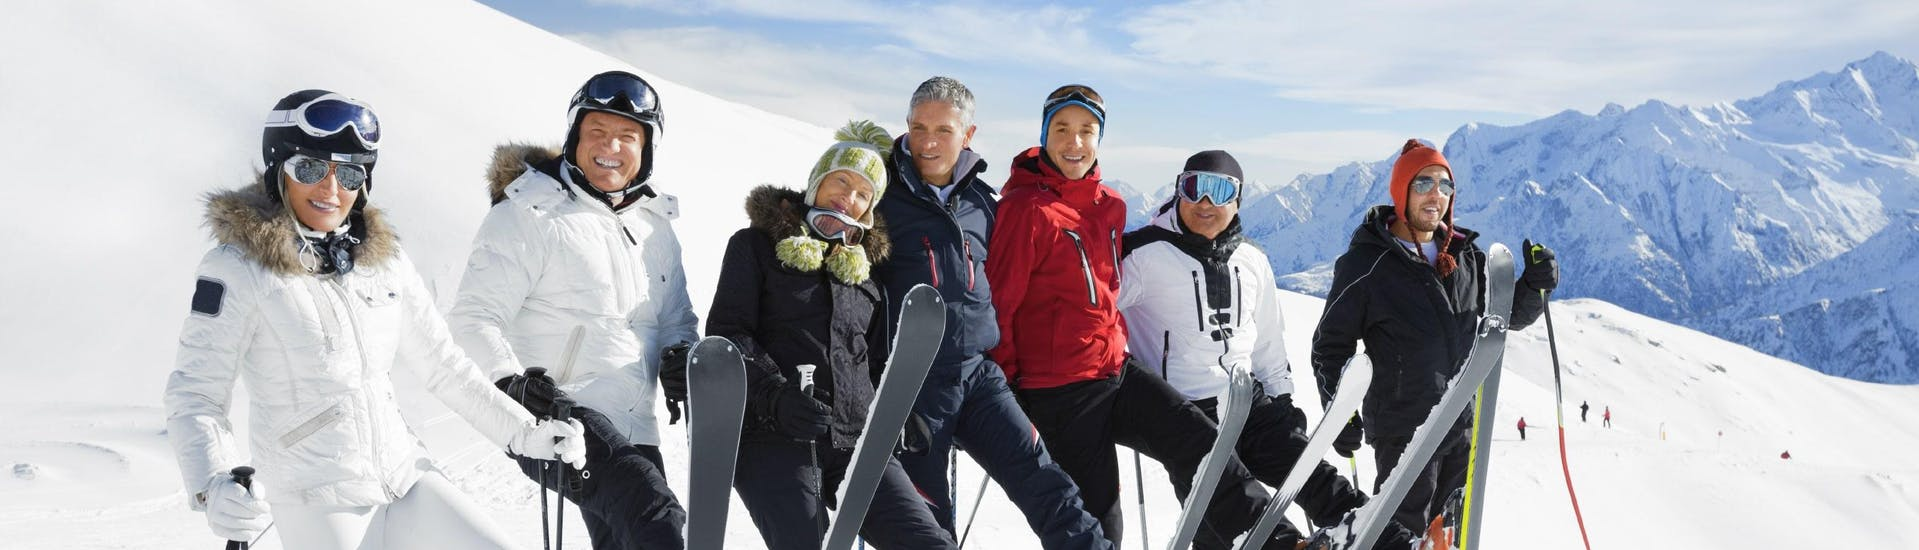 A group of skiers enjoying one of the many ski lessons for adults in the ski resort of Méribel.